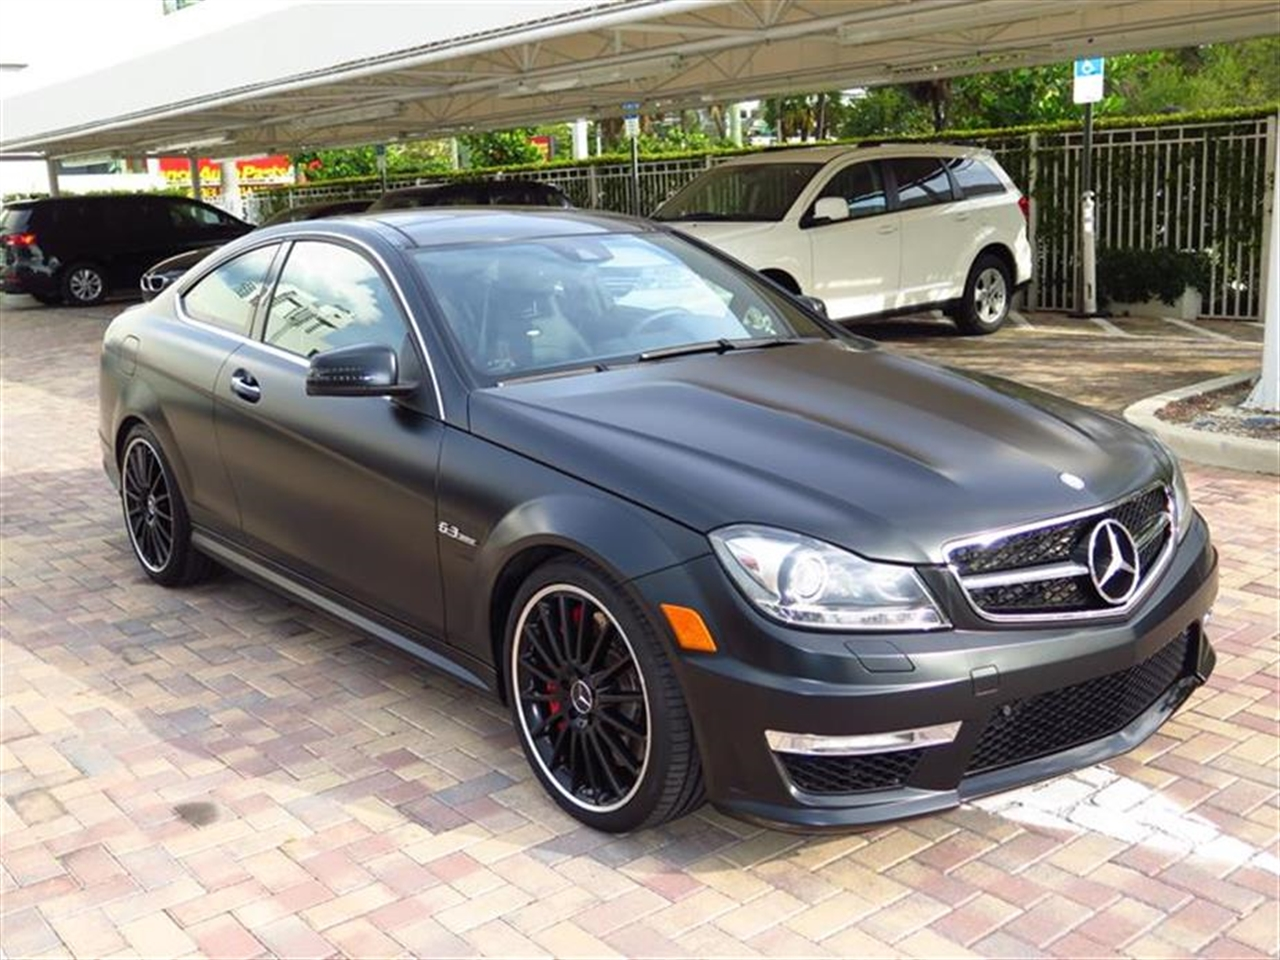 2012 Mercedes C-CLASS 2dr Cpe C63 AMG RWD 21093 miles 58 central controller display wretractable